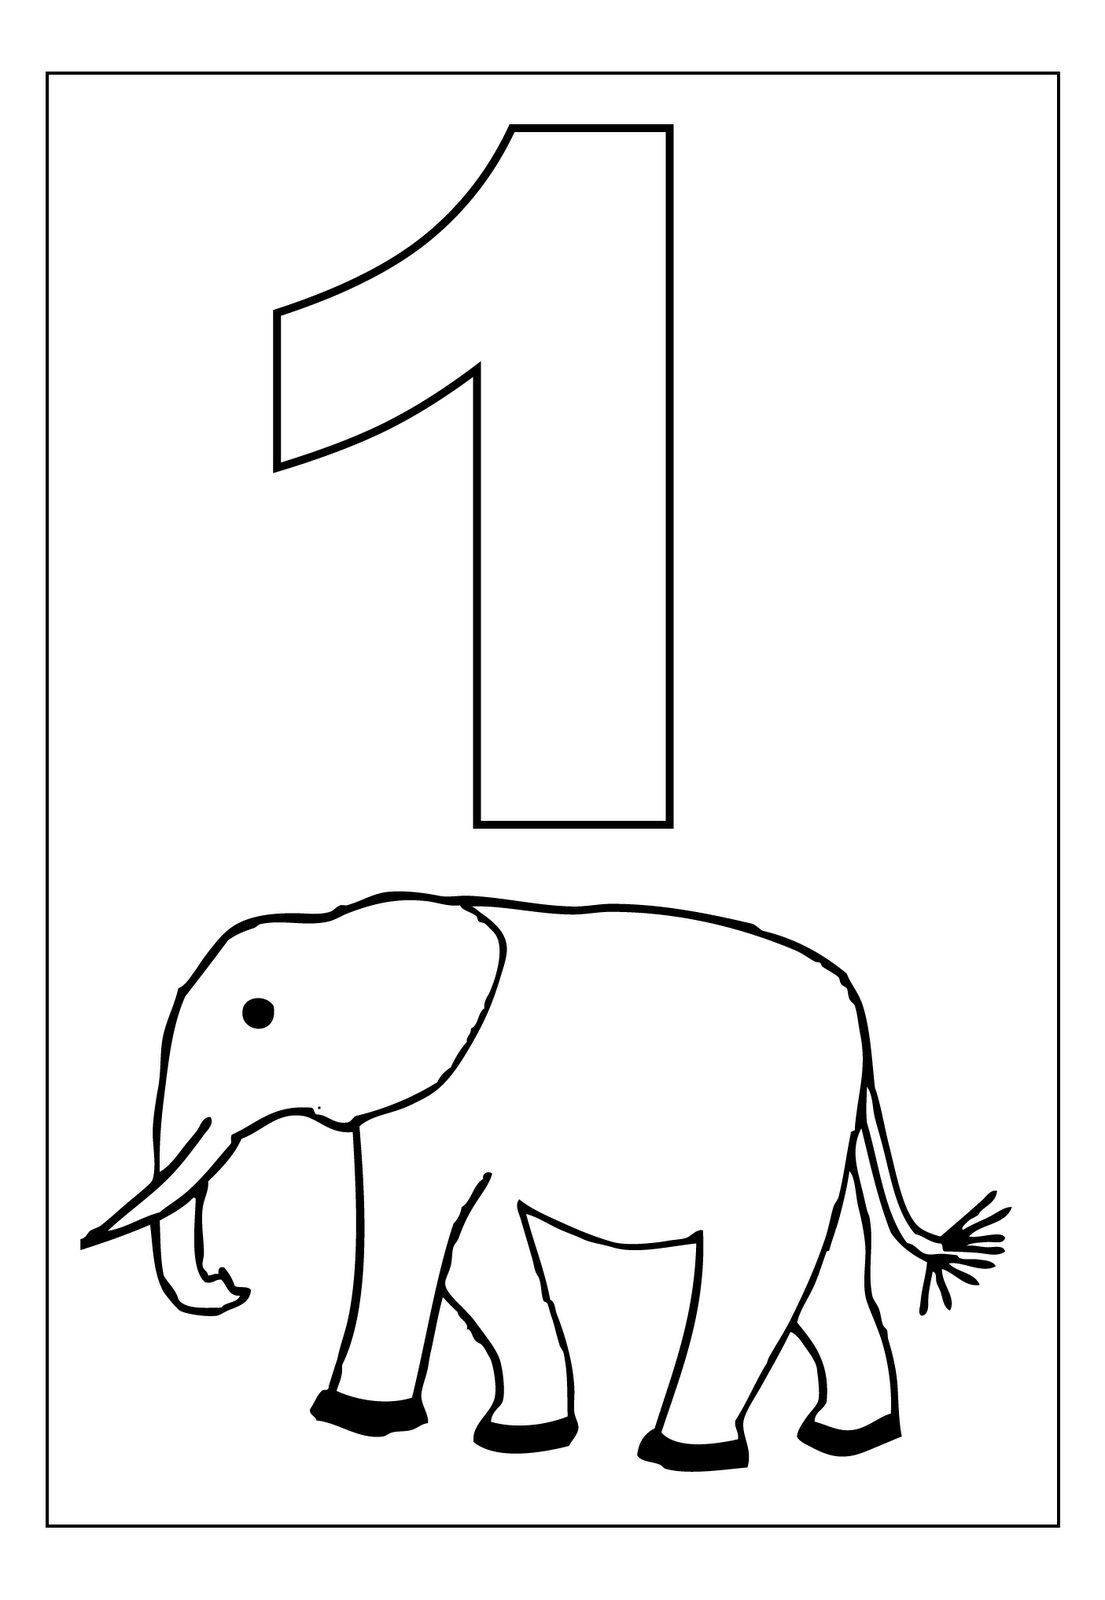 number 1 for coloring free printable number coloring pages for kids coloring number for 1